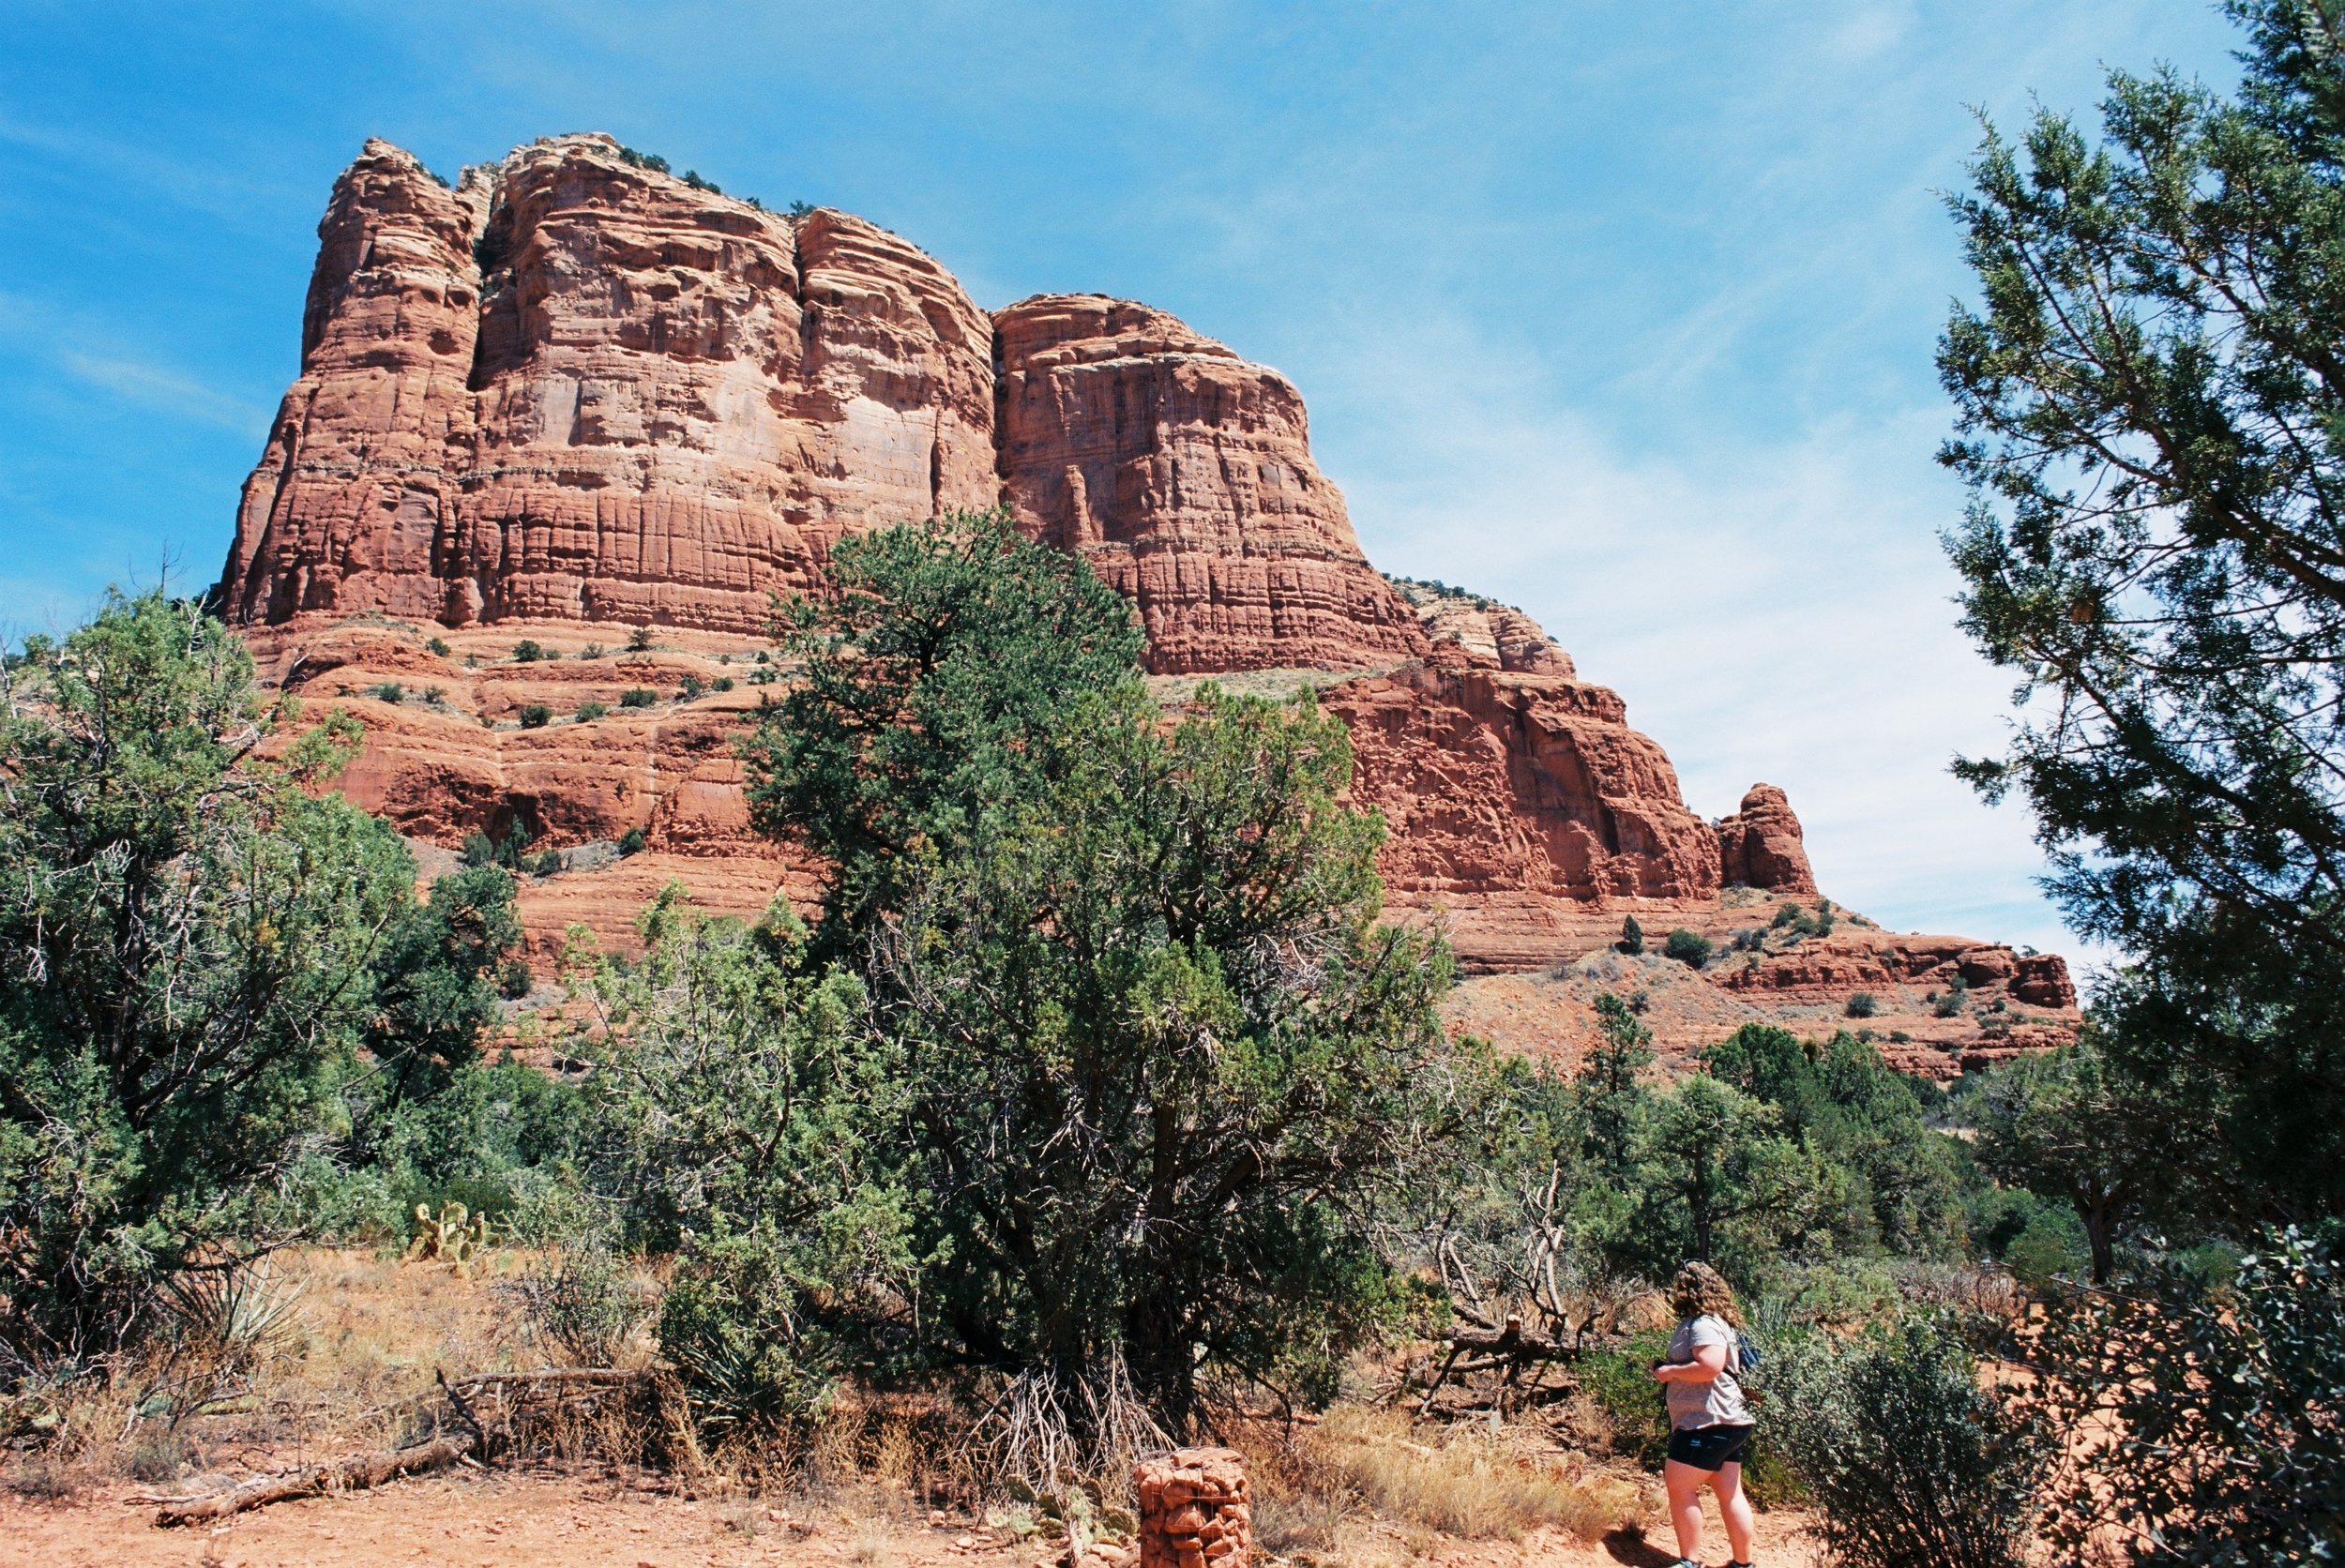 Hot, dry, and green in Sedona